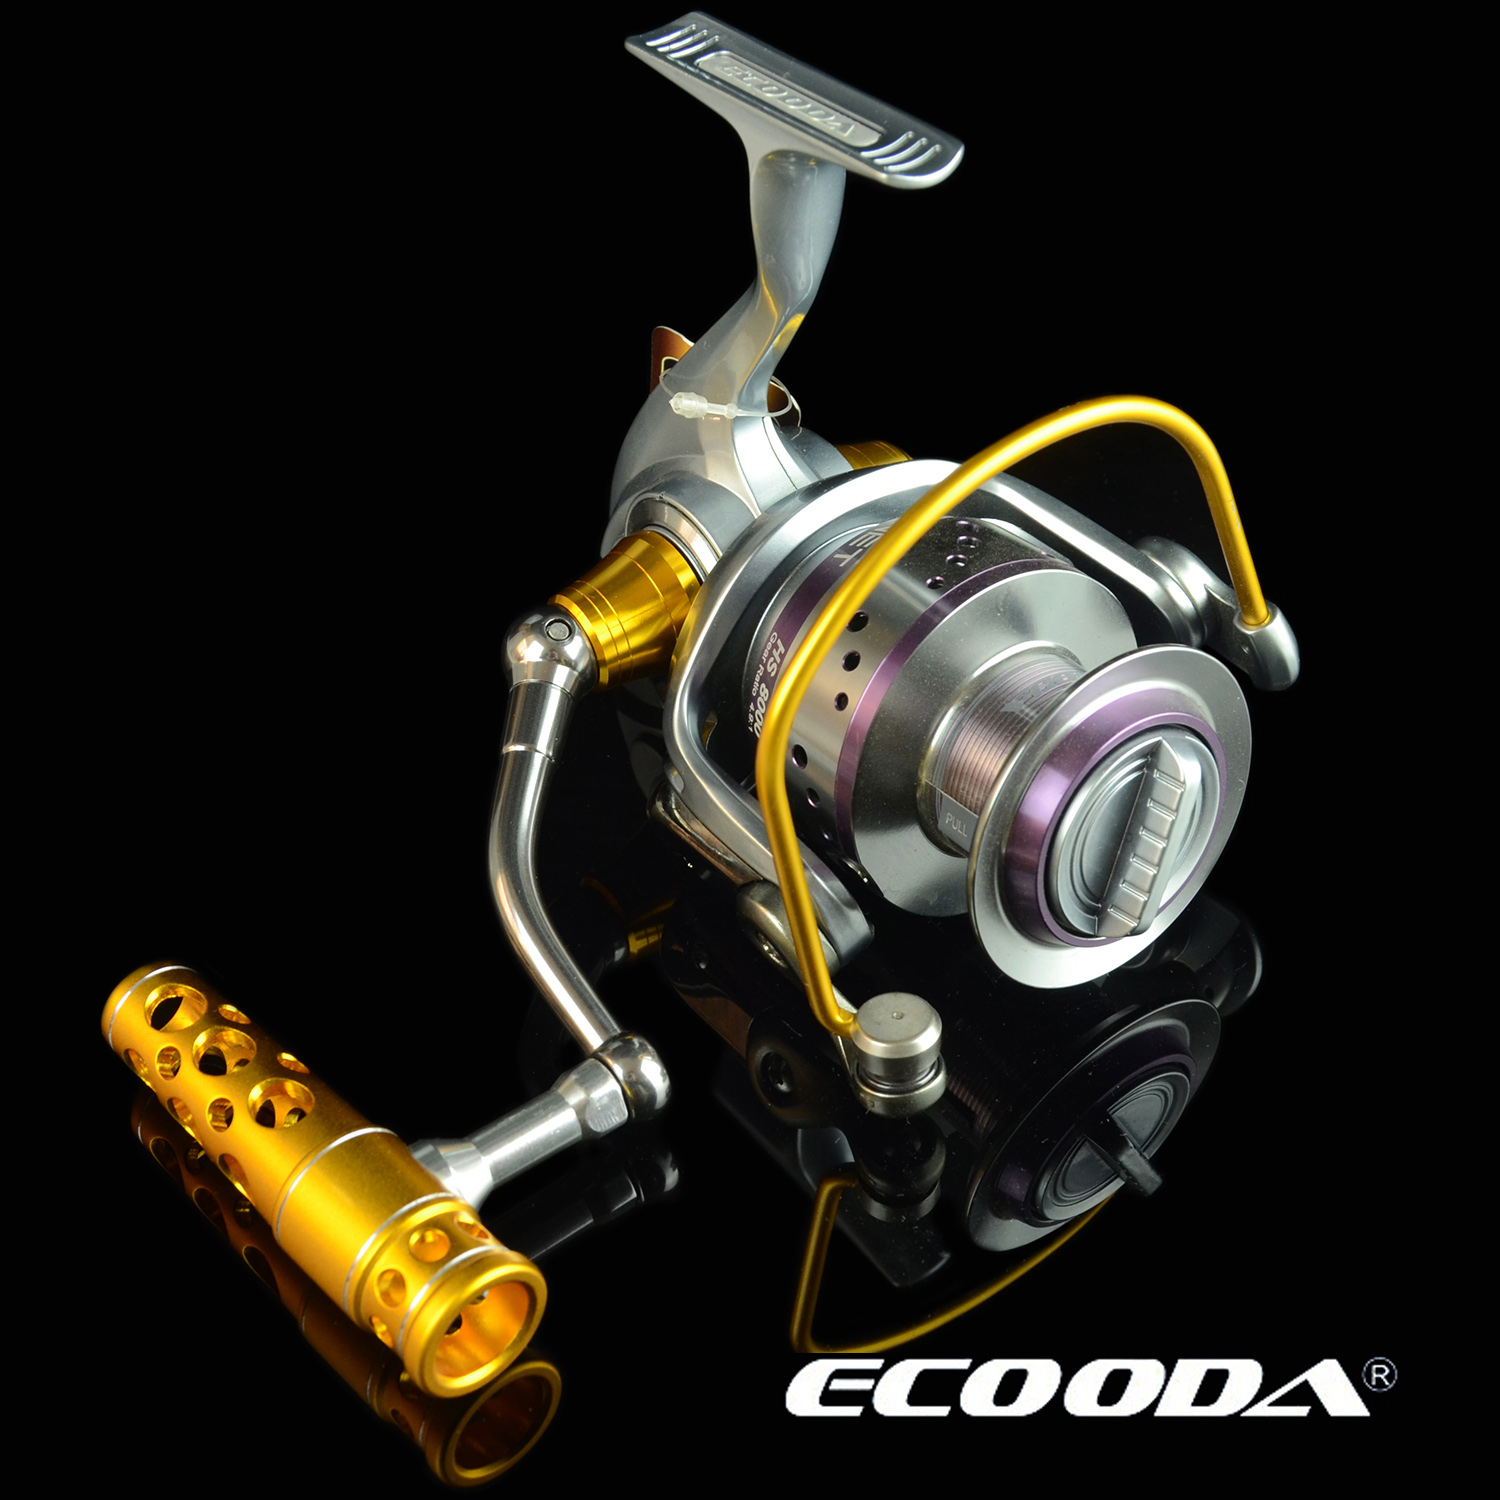 ECOODA/Ikuoda HS12000 7+1 axis Hummer all-metal heavy fishing heavy fishing boat fishing iron fishing reel